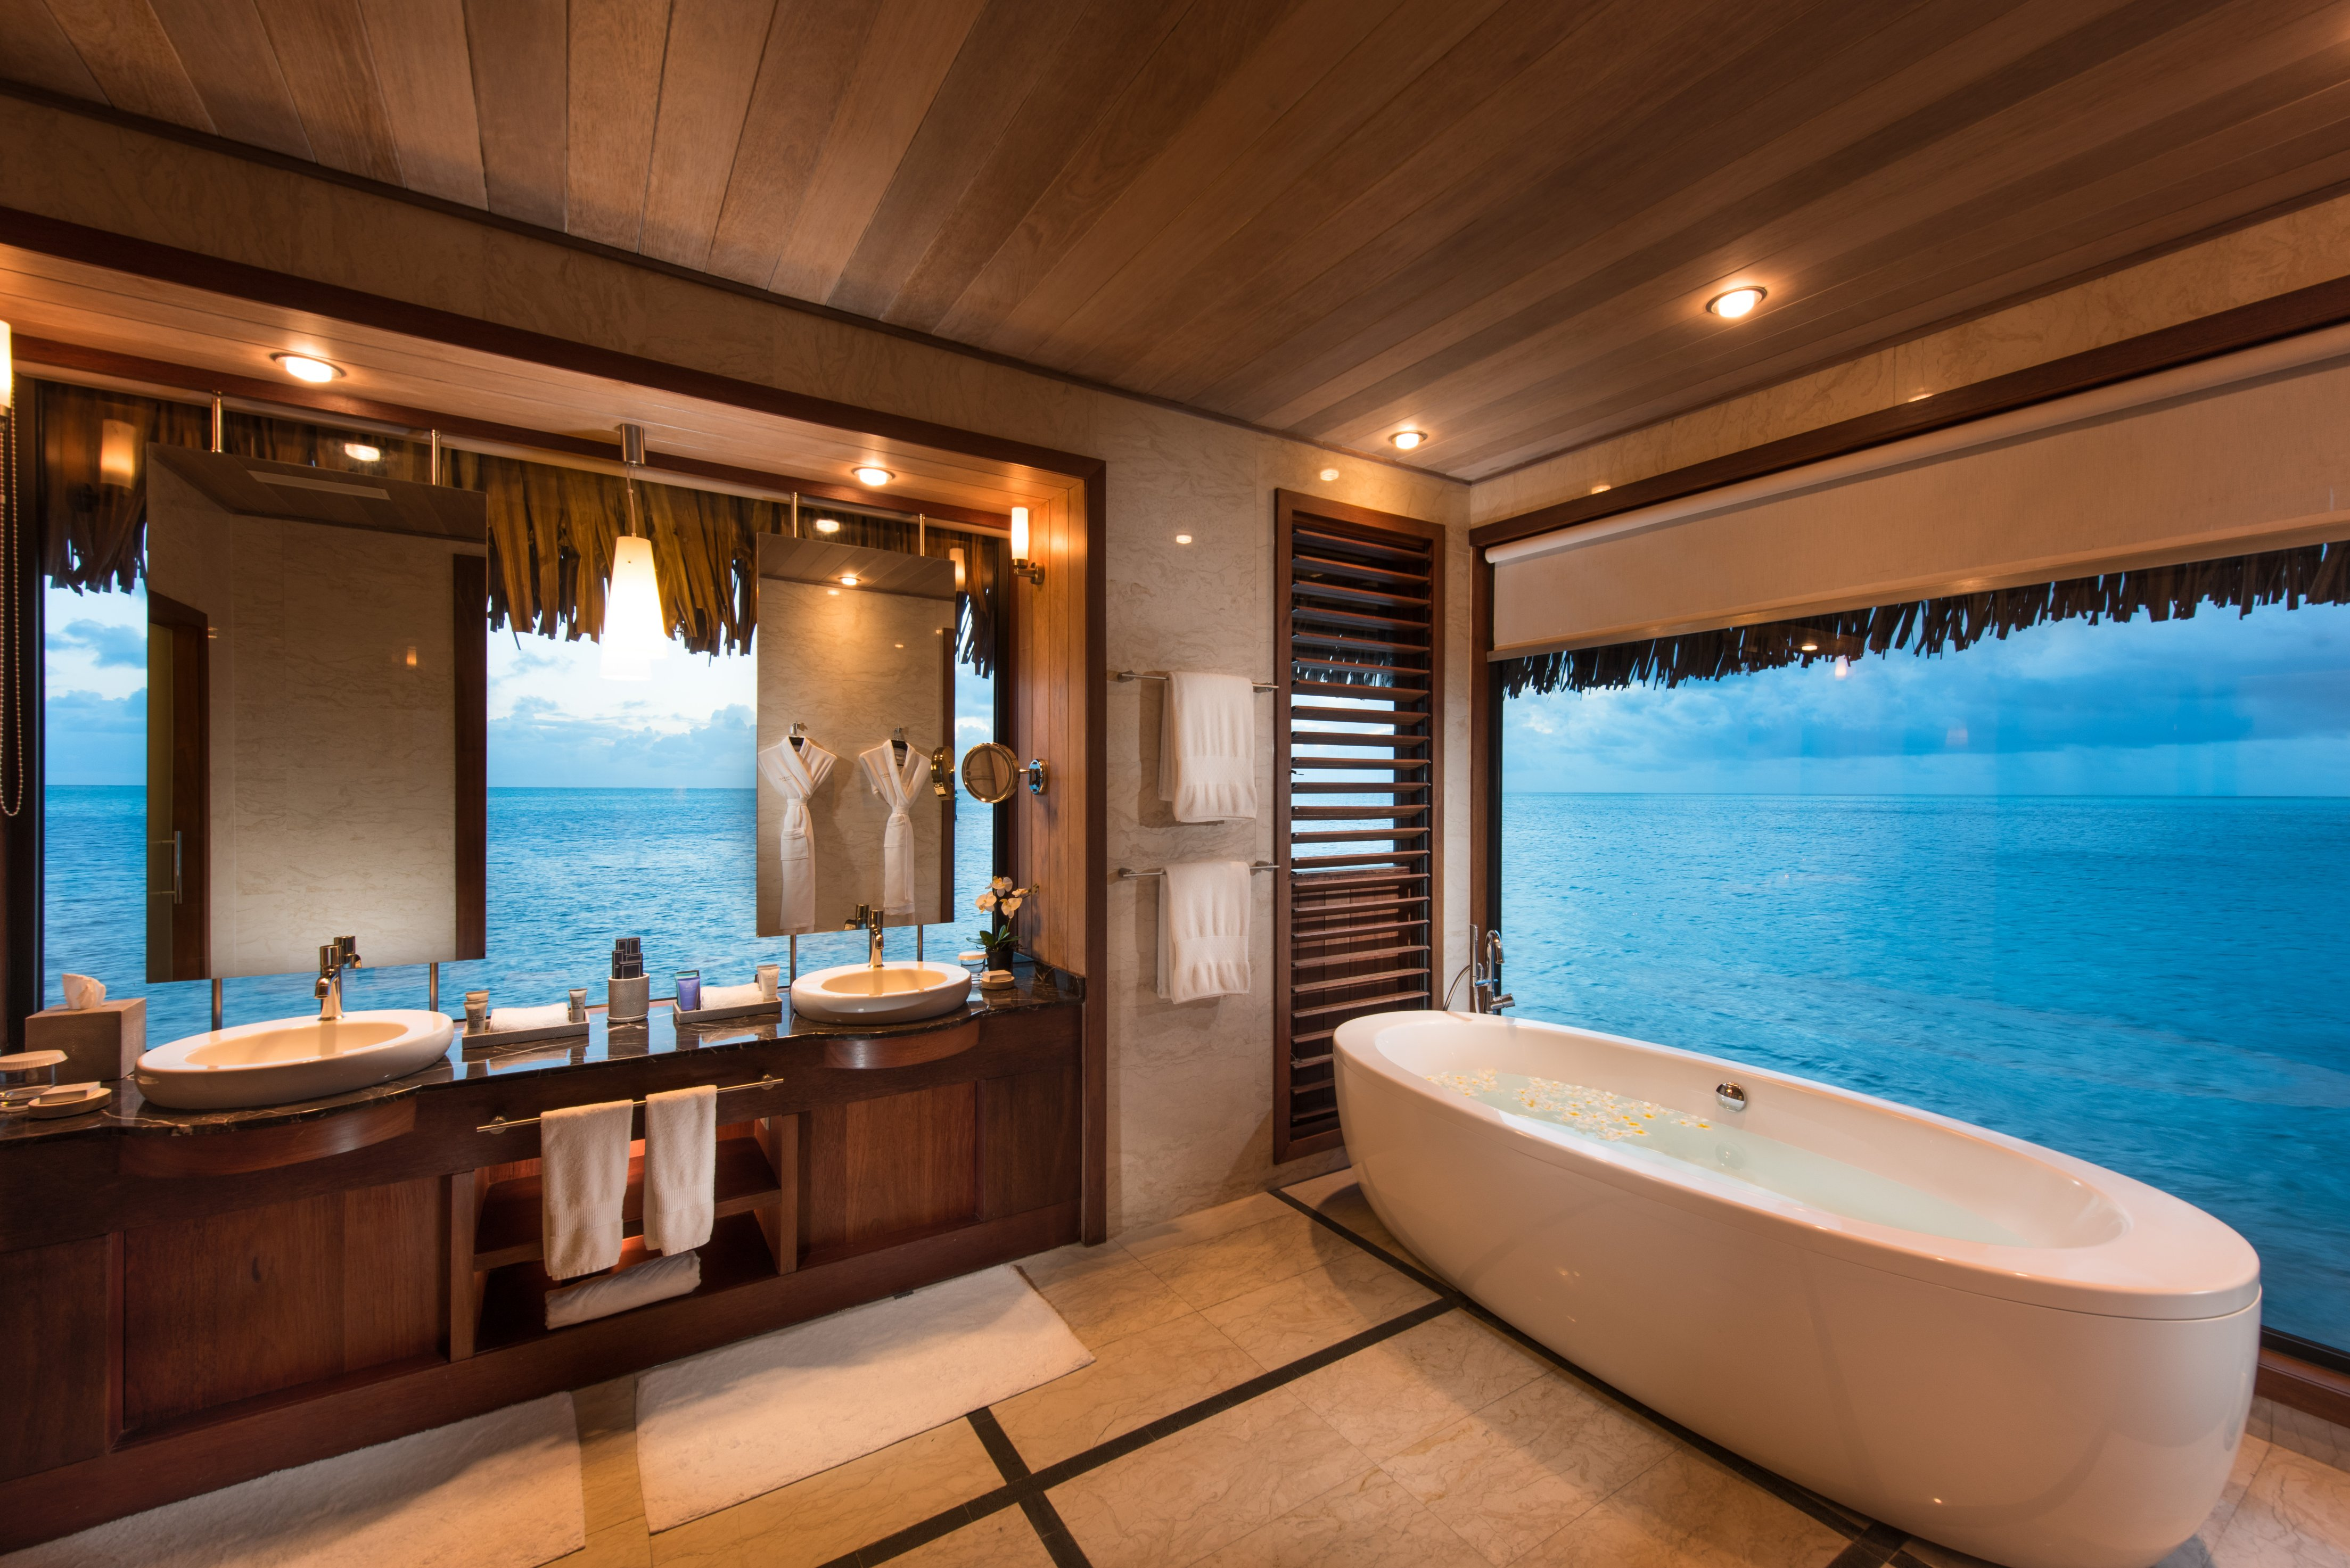 Honeymoon Hotels 25 Of The World S Best Places To Go Cnn